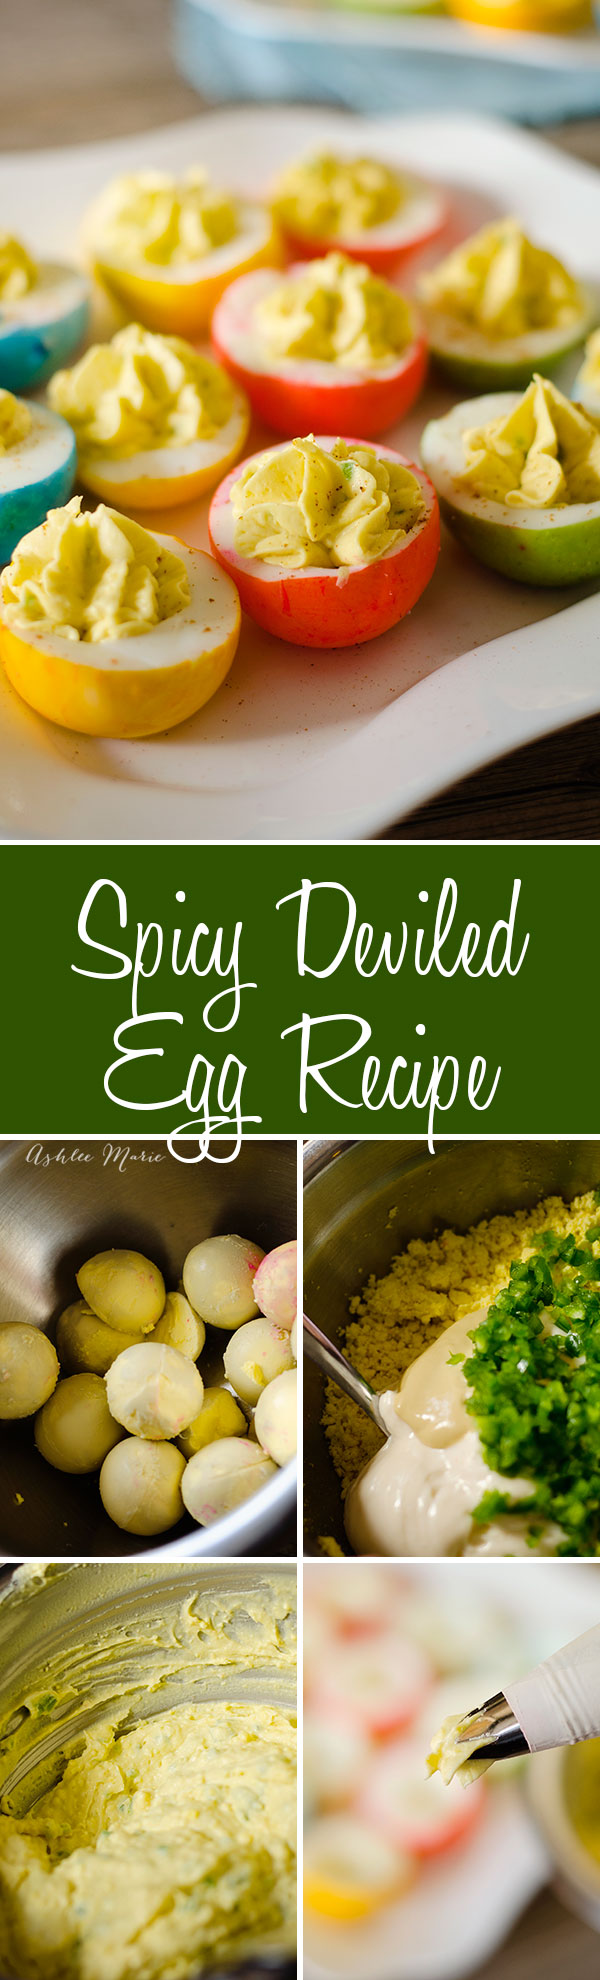 recipe for spicy deviled eggs, even my kids love this recipe